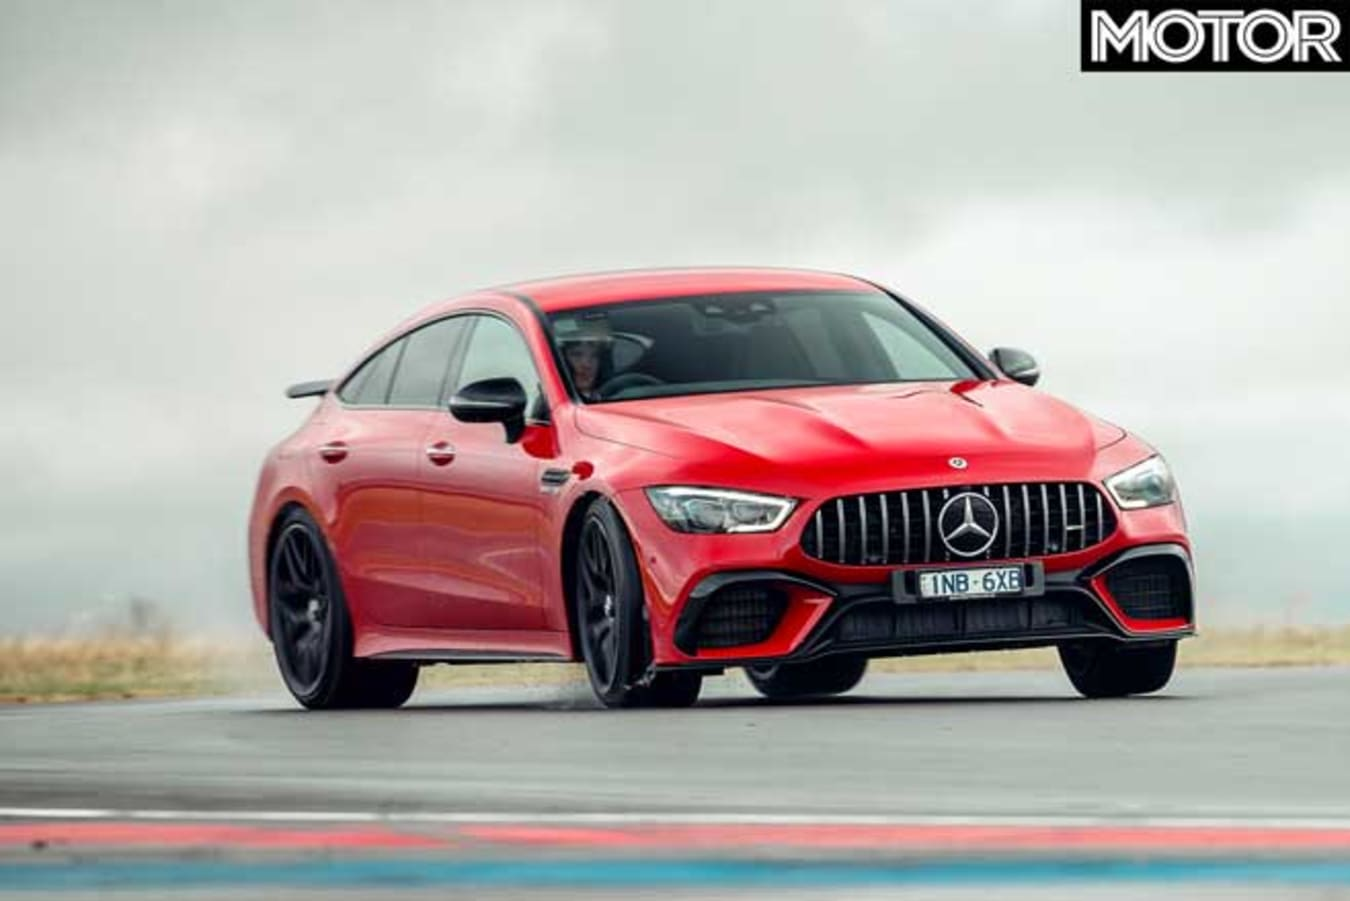 Performance Car Of The Year 2020 Mercedes AMG GT 63 S Drive Jpg